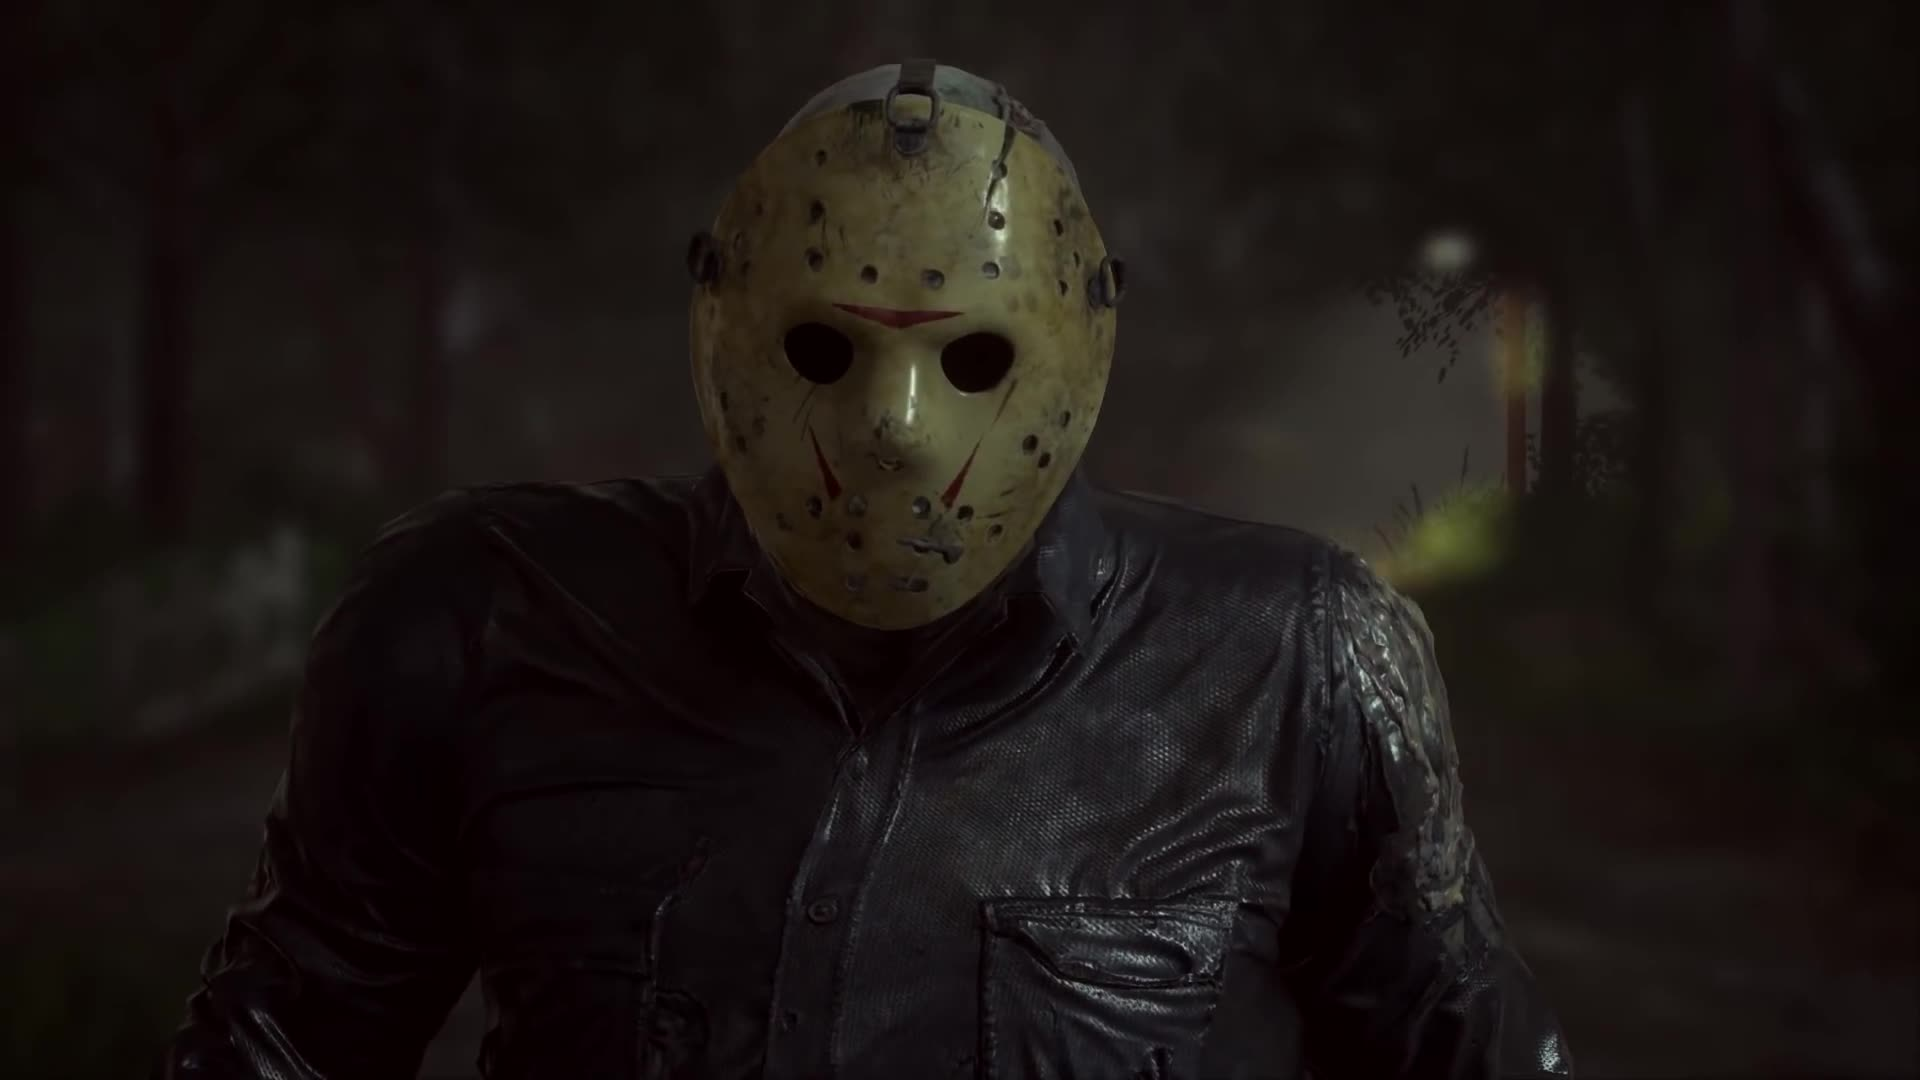 Jason is being a bitch again